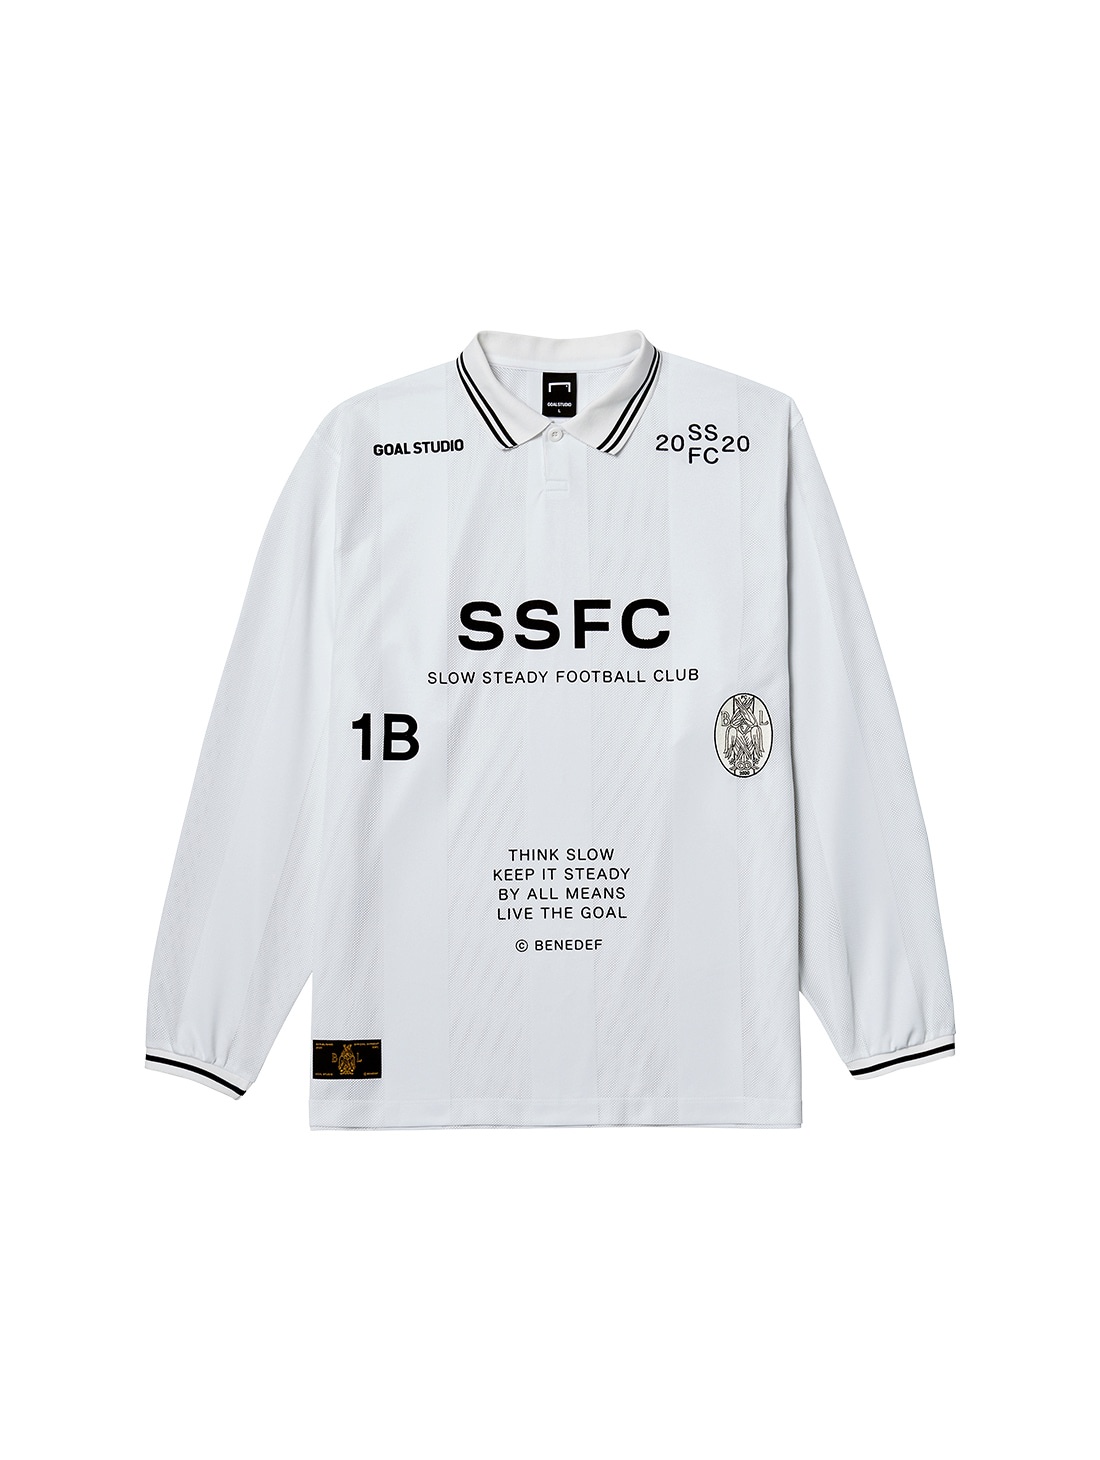 GOALSTUDIO SSFC UNIFORM LONG SLEEVE - BLACK(B)